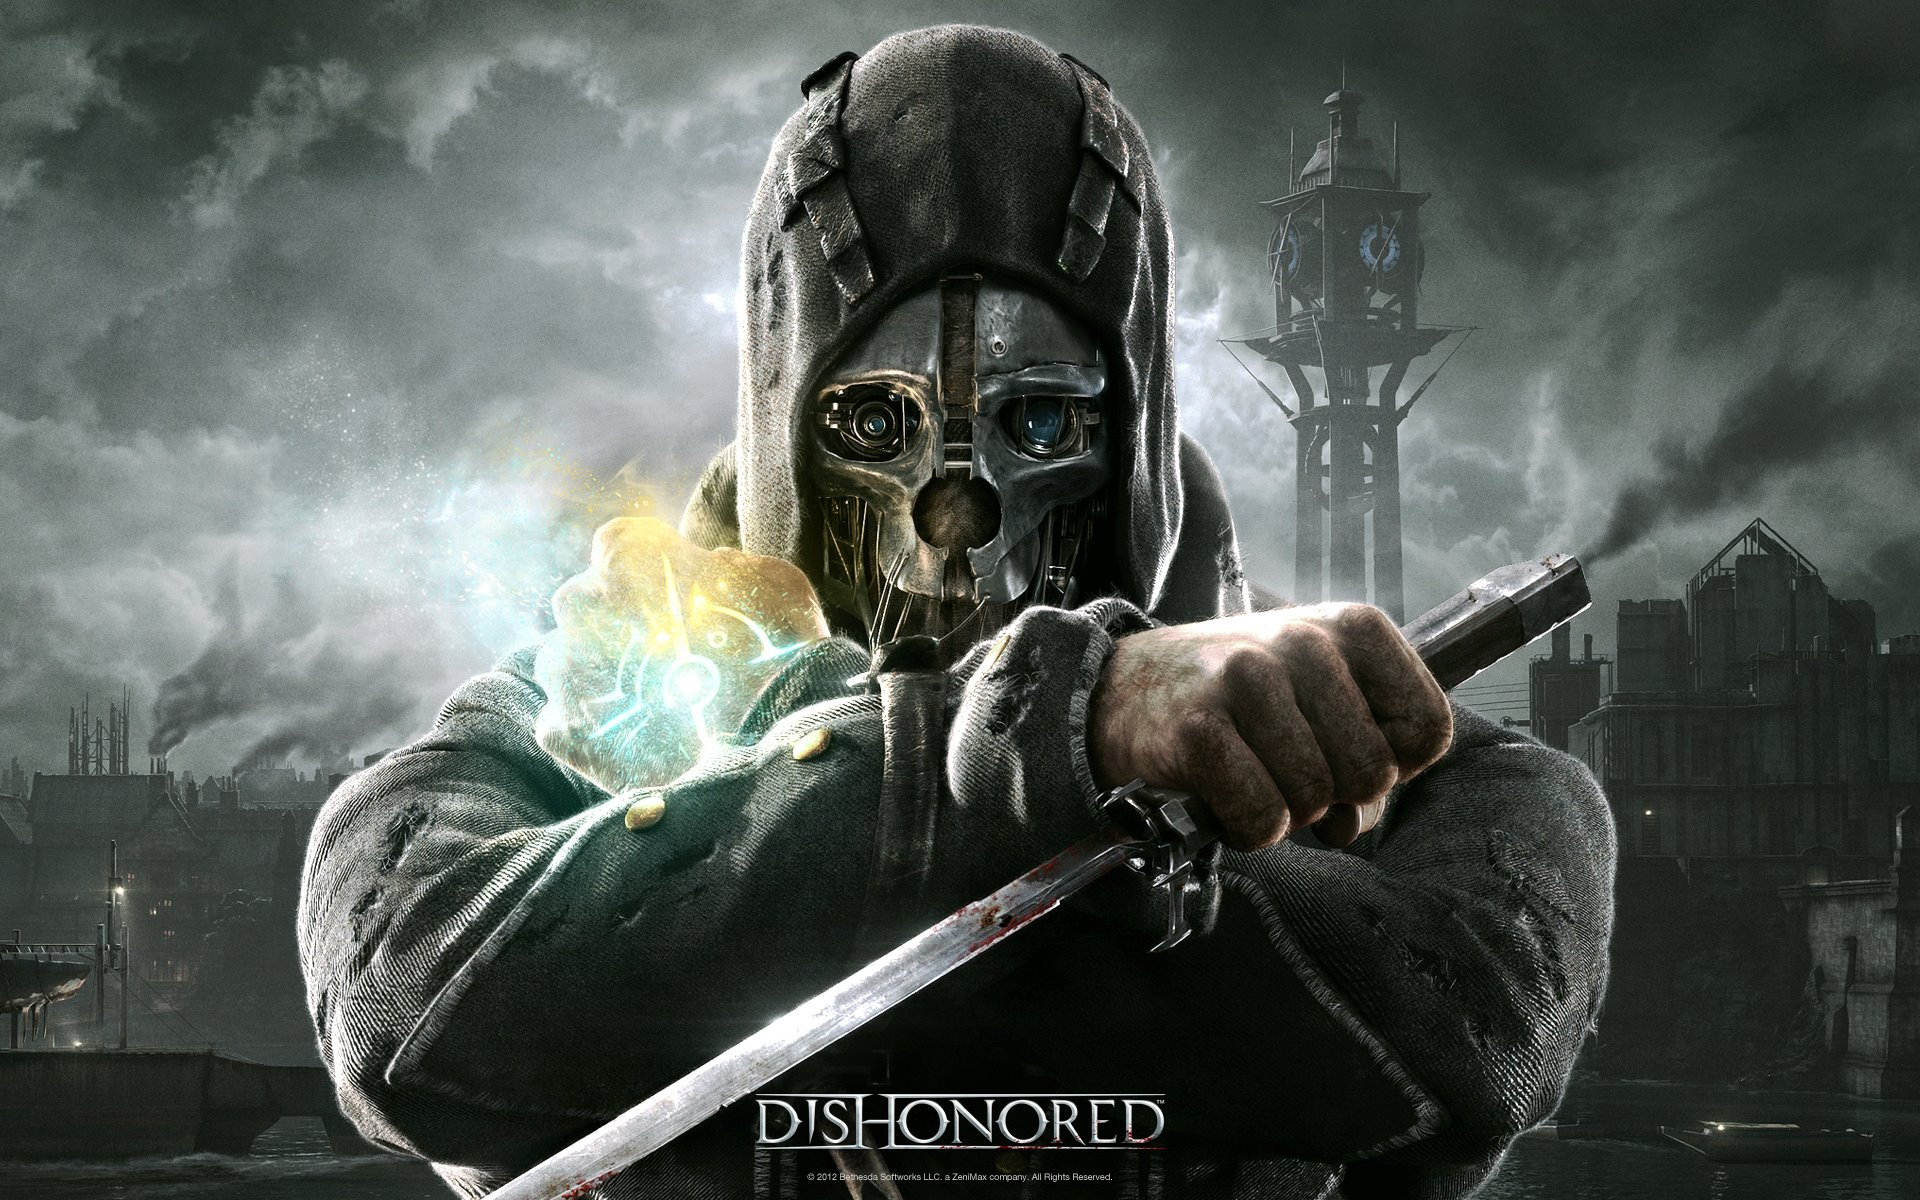 Dishonored Definitive Edition (Steam) + discount + GIFT